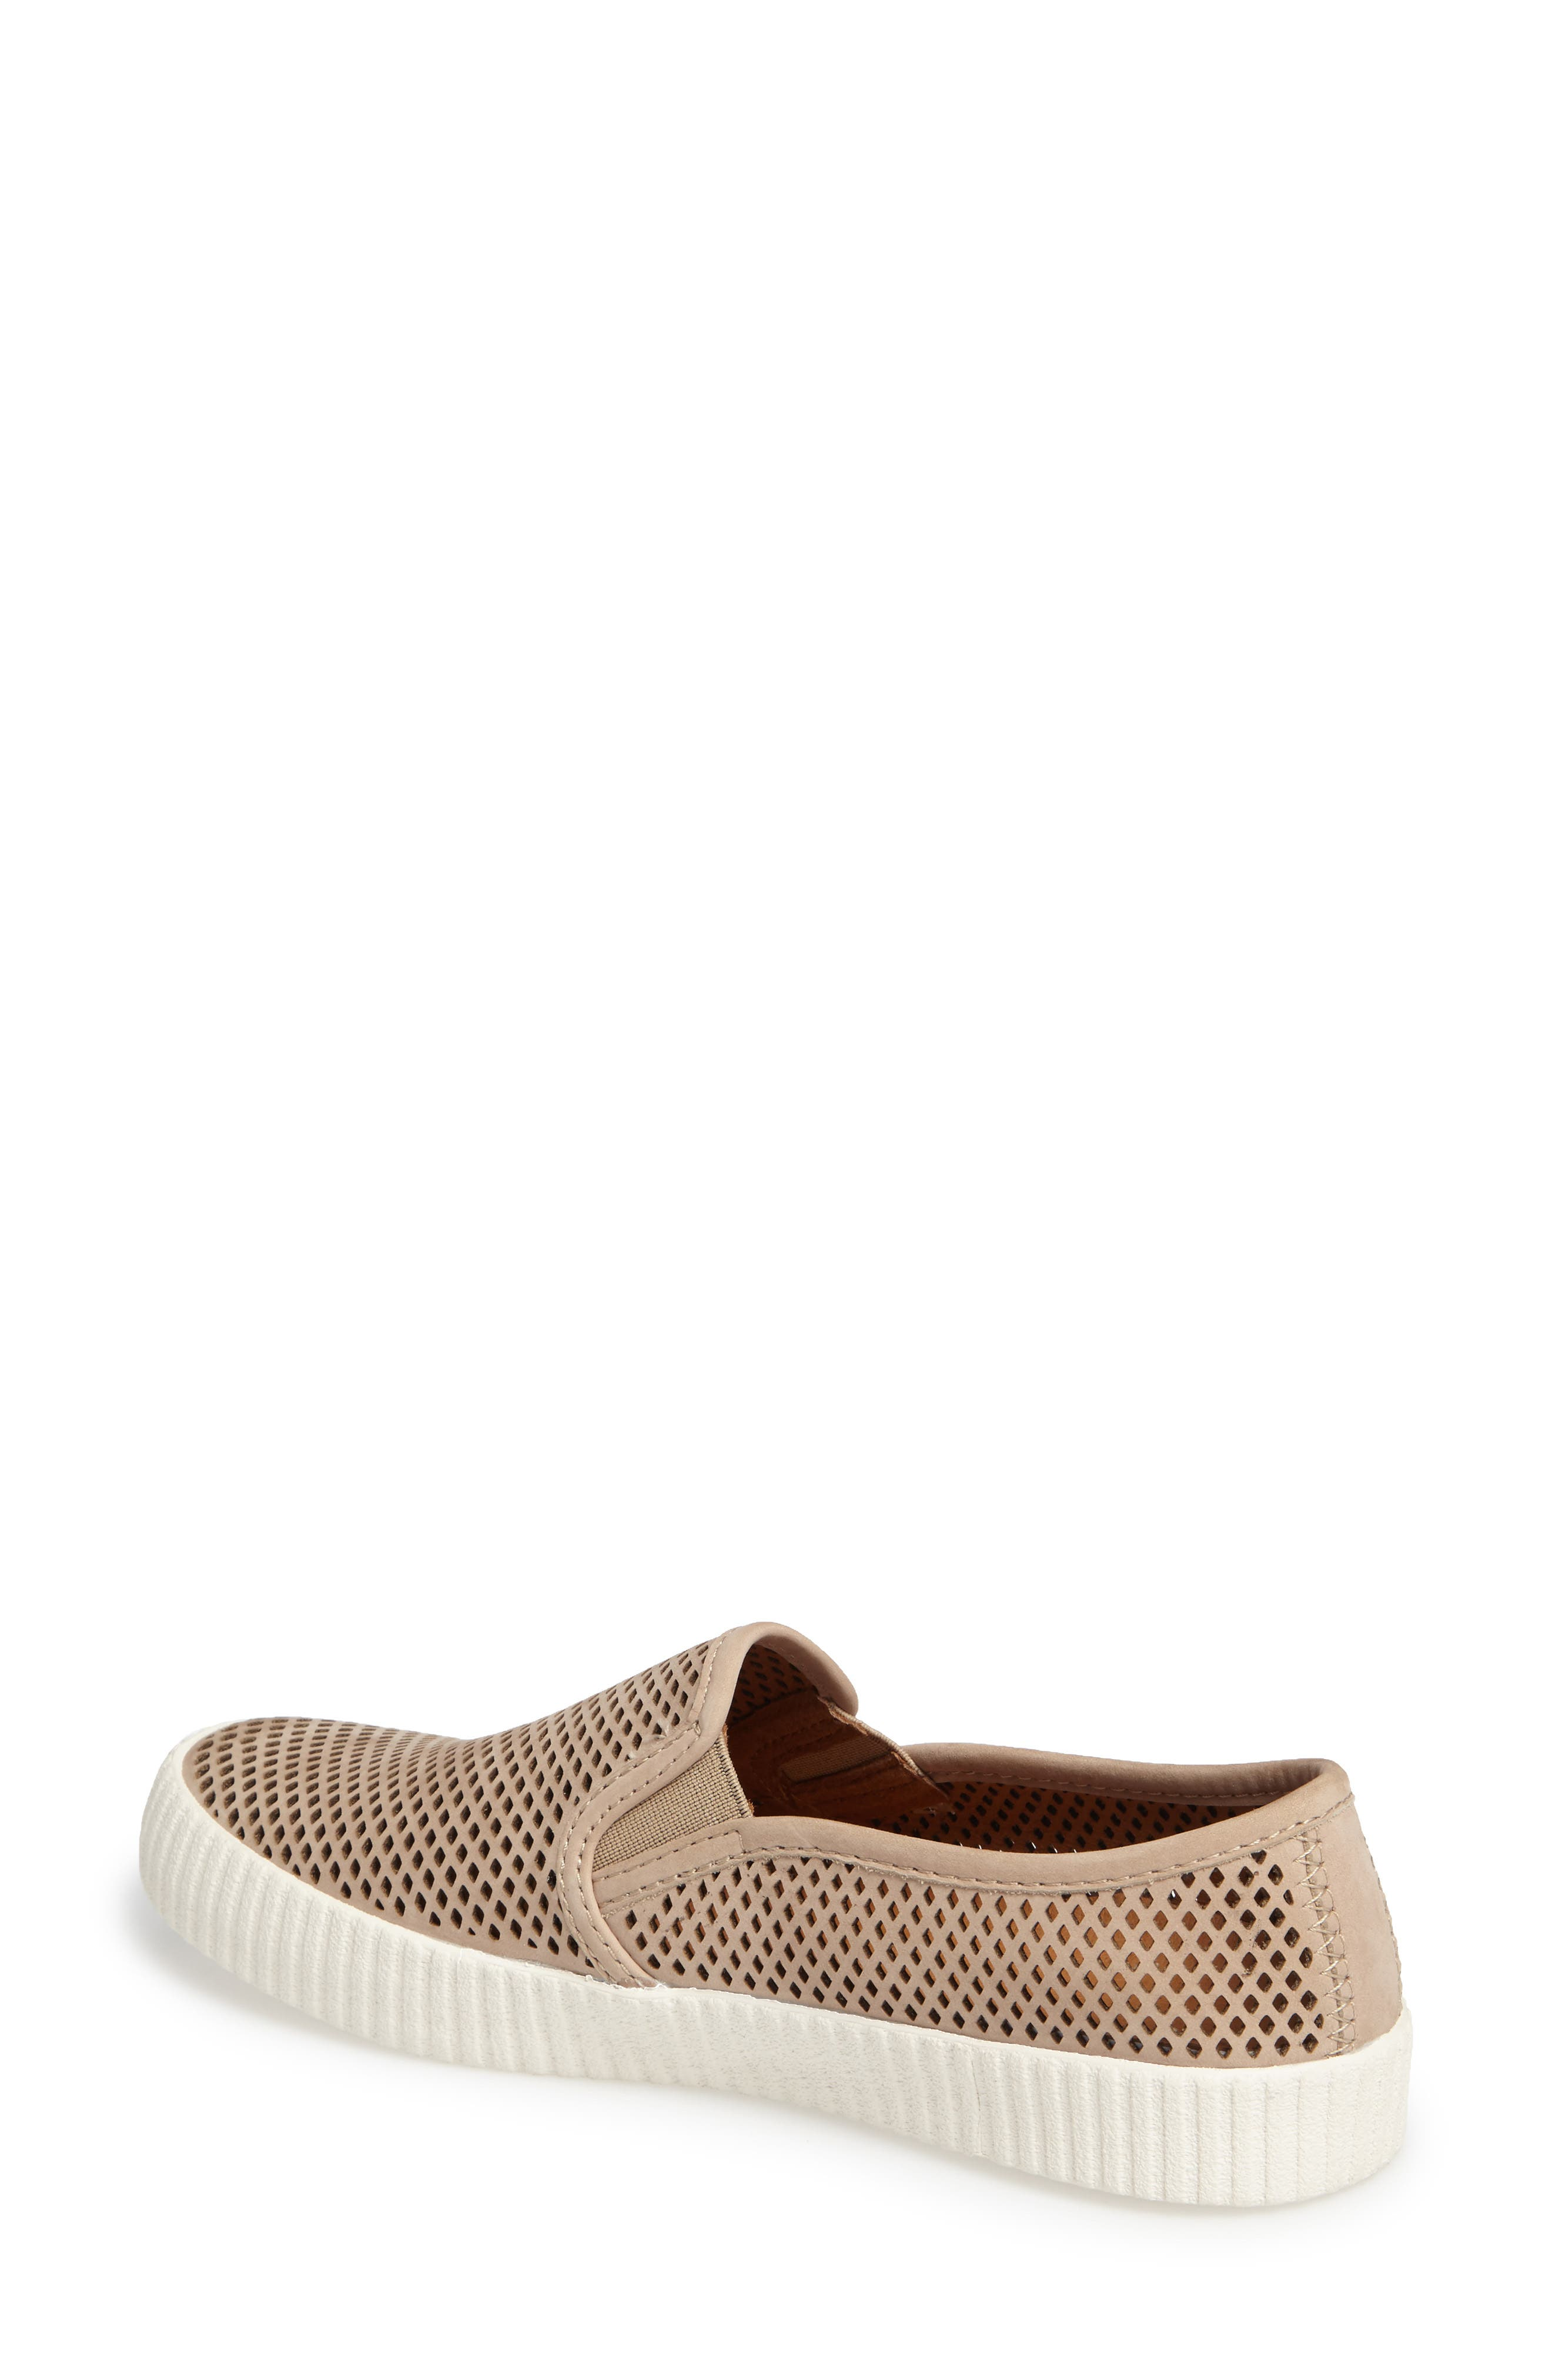 Camille Perforated Slip-On Sneaker,                             Alternate thumbnail 4, color,